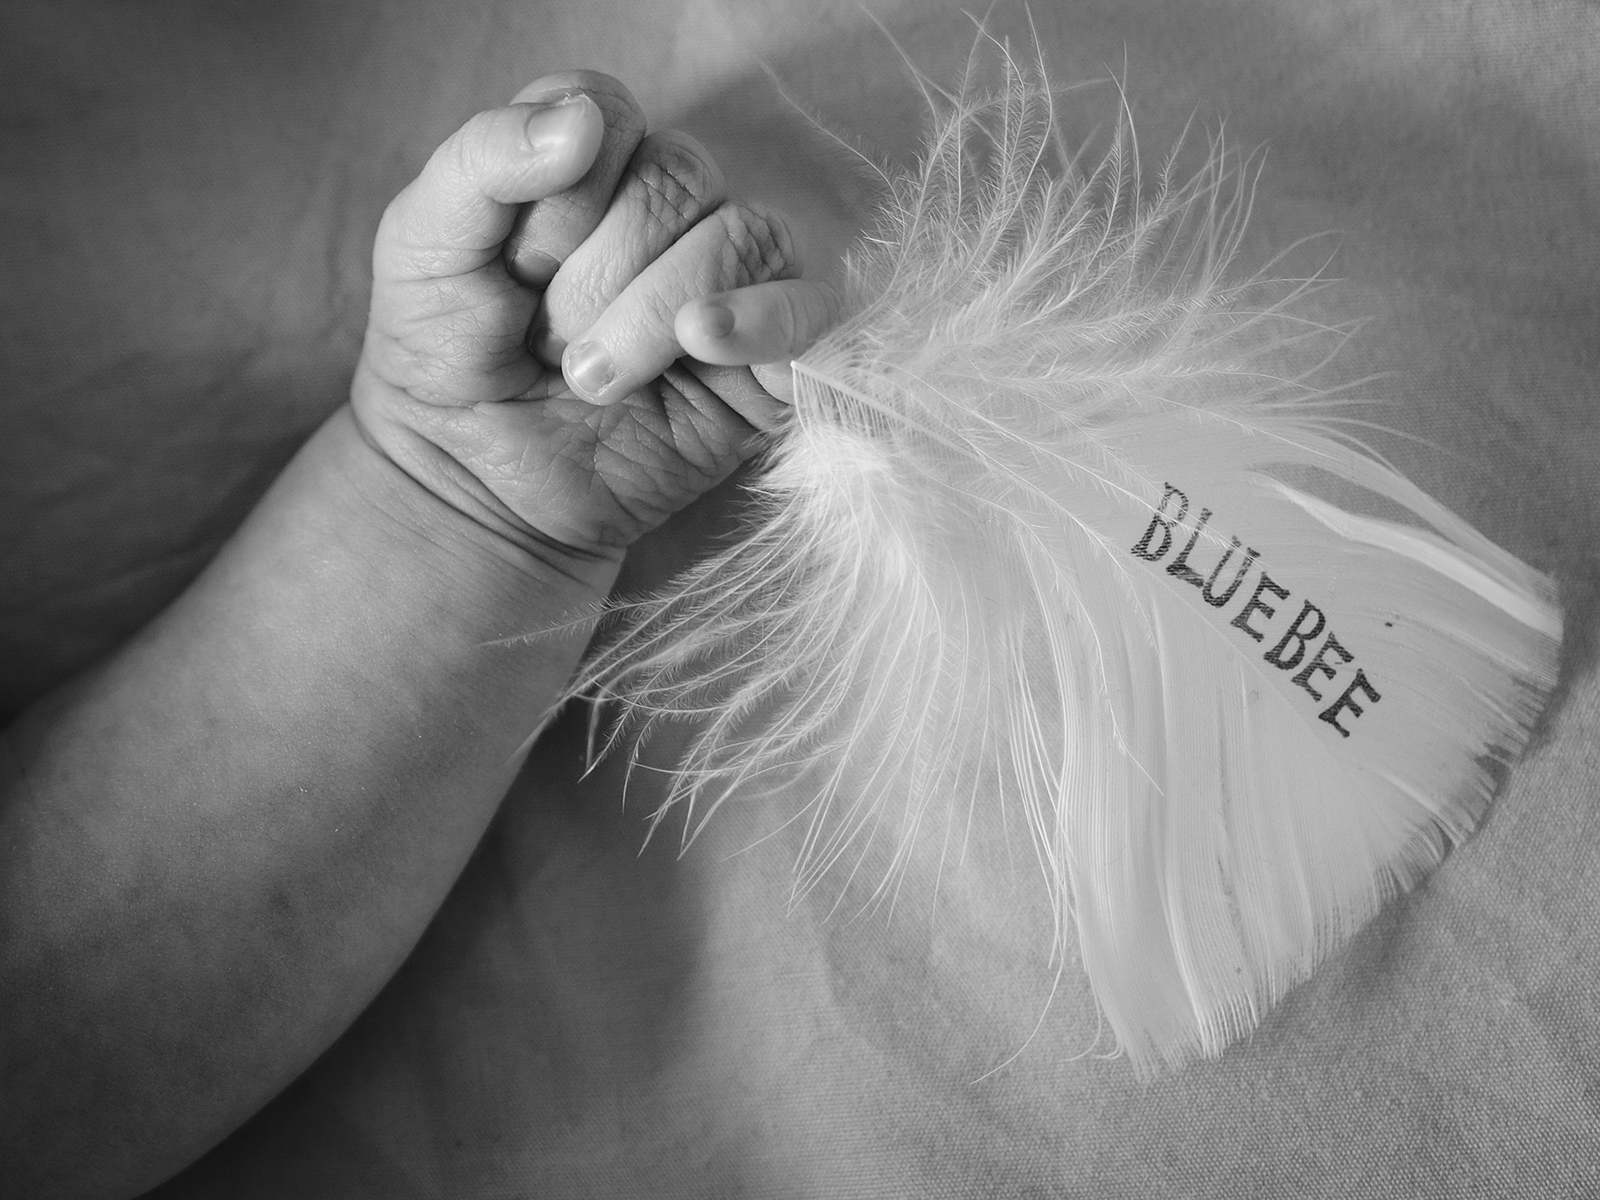 """a baby's hand holding a feather with """"BLUEBEE"""" glued on"""